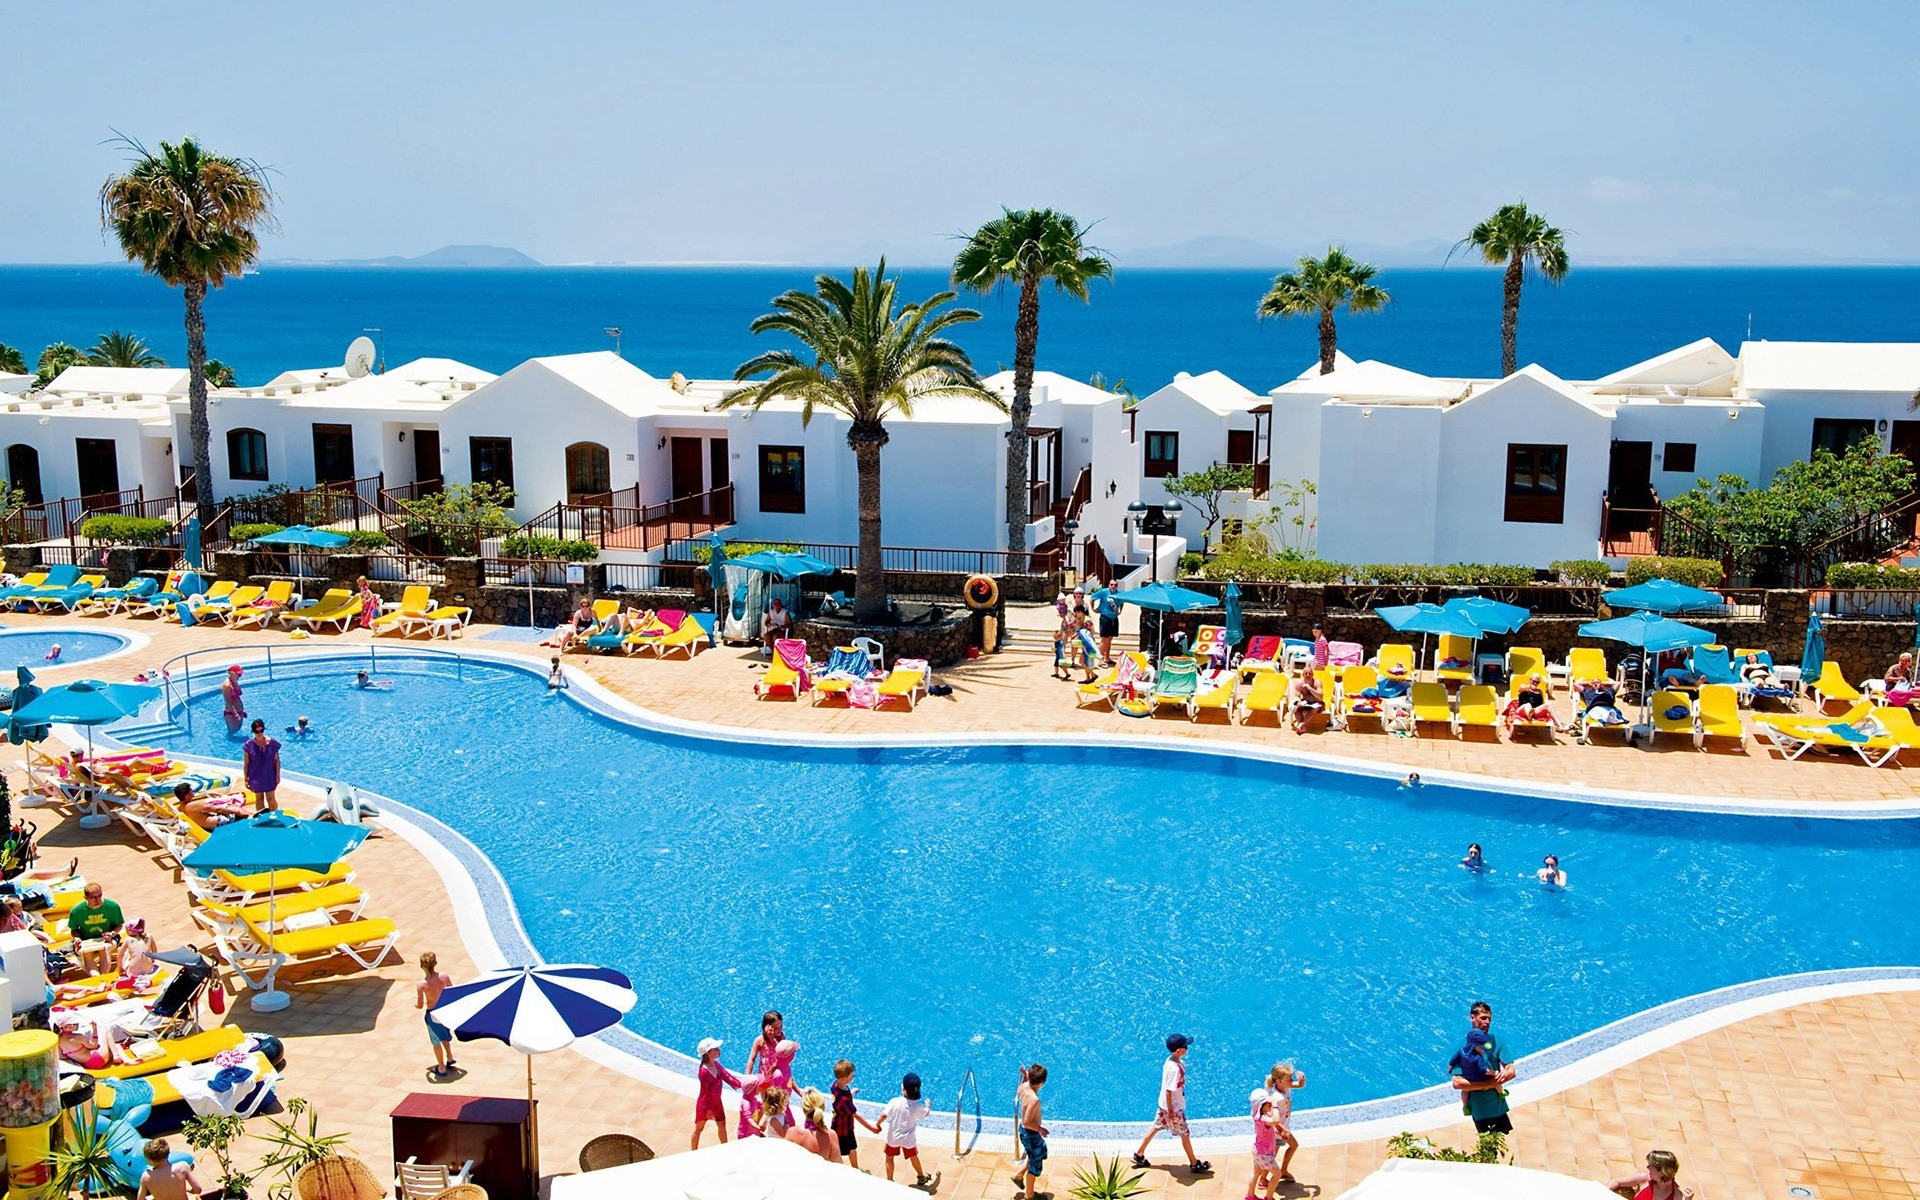 spain resort swimming pool swimming vacation pool water travel hotel umbrella leisure seashore beach summer poolside sea chair luxury recreation tropical tourism